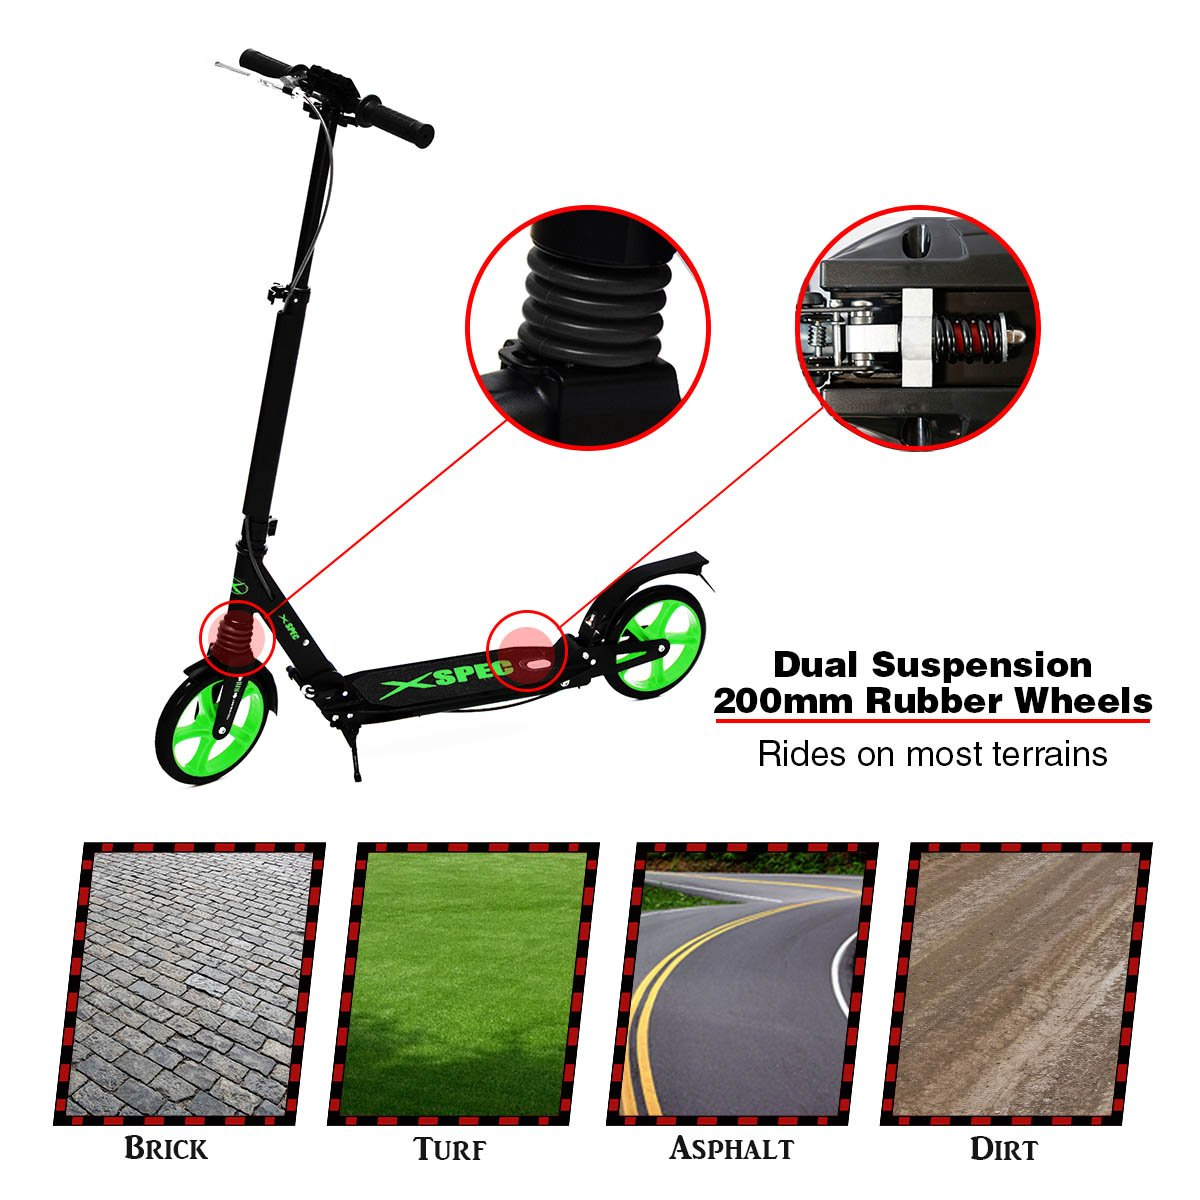 Xspec Folding Adult Kick Street Scooter with Dual Suspension, Dual Rear Wheel Braking System & Kick Stand, Supports 220 lbs, City Urban Commuter, Aluminum Frame Matte Black and Green, Carrying Strap